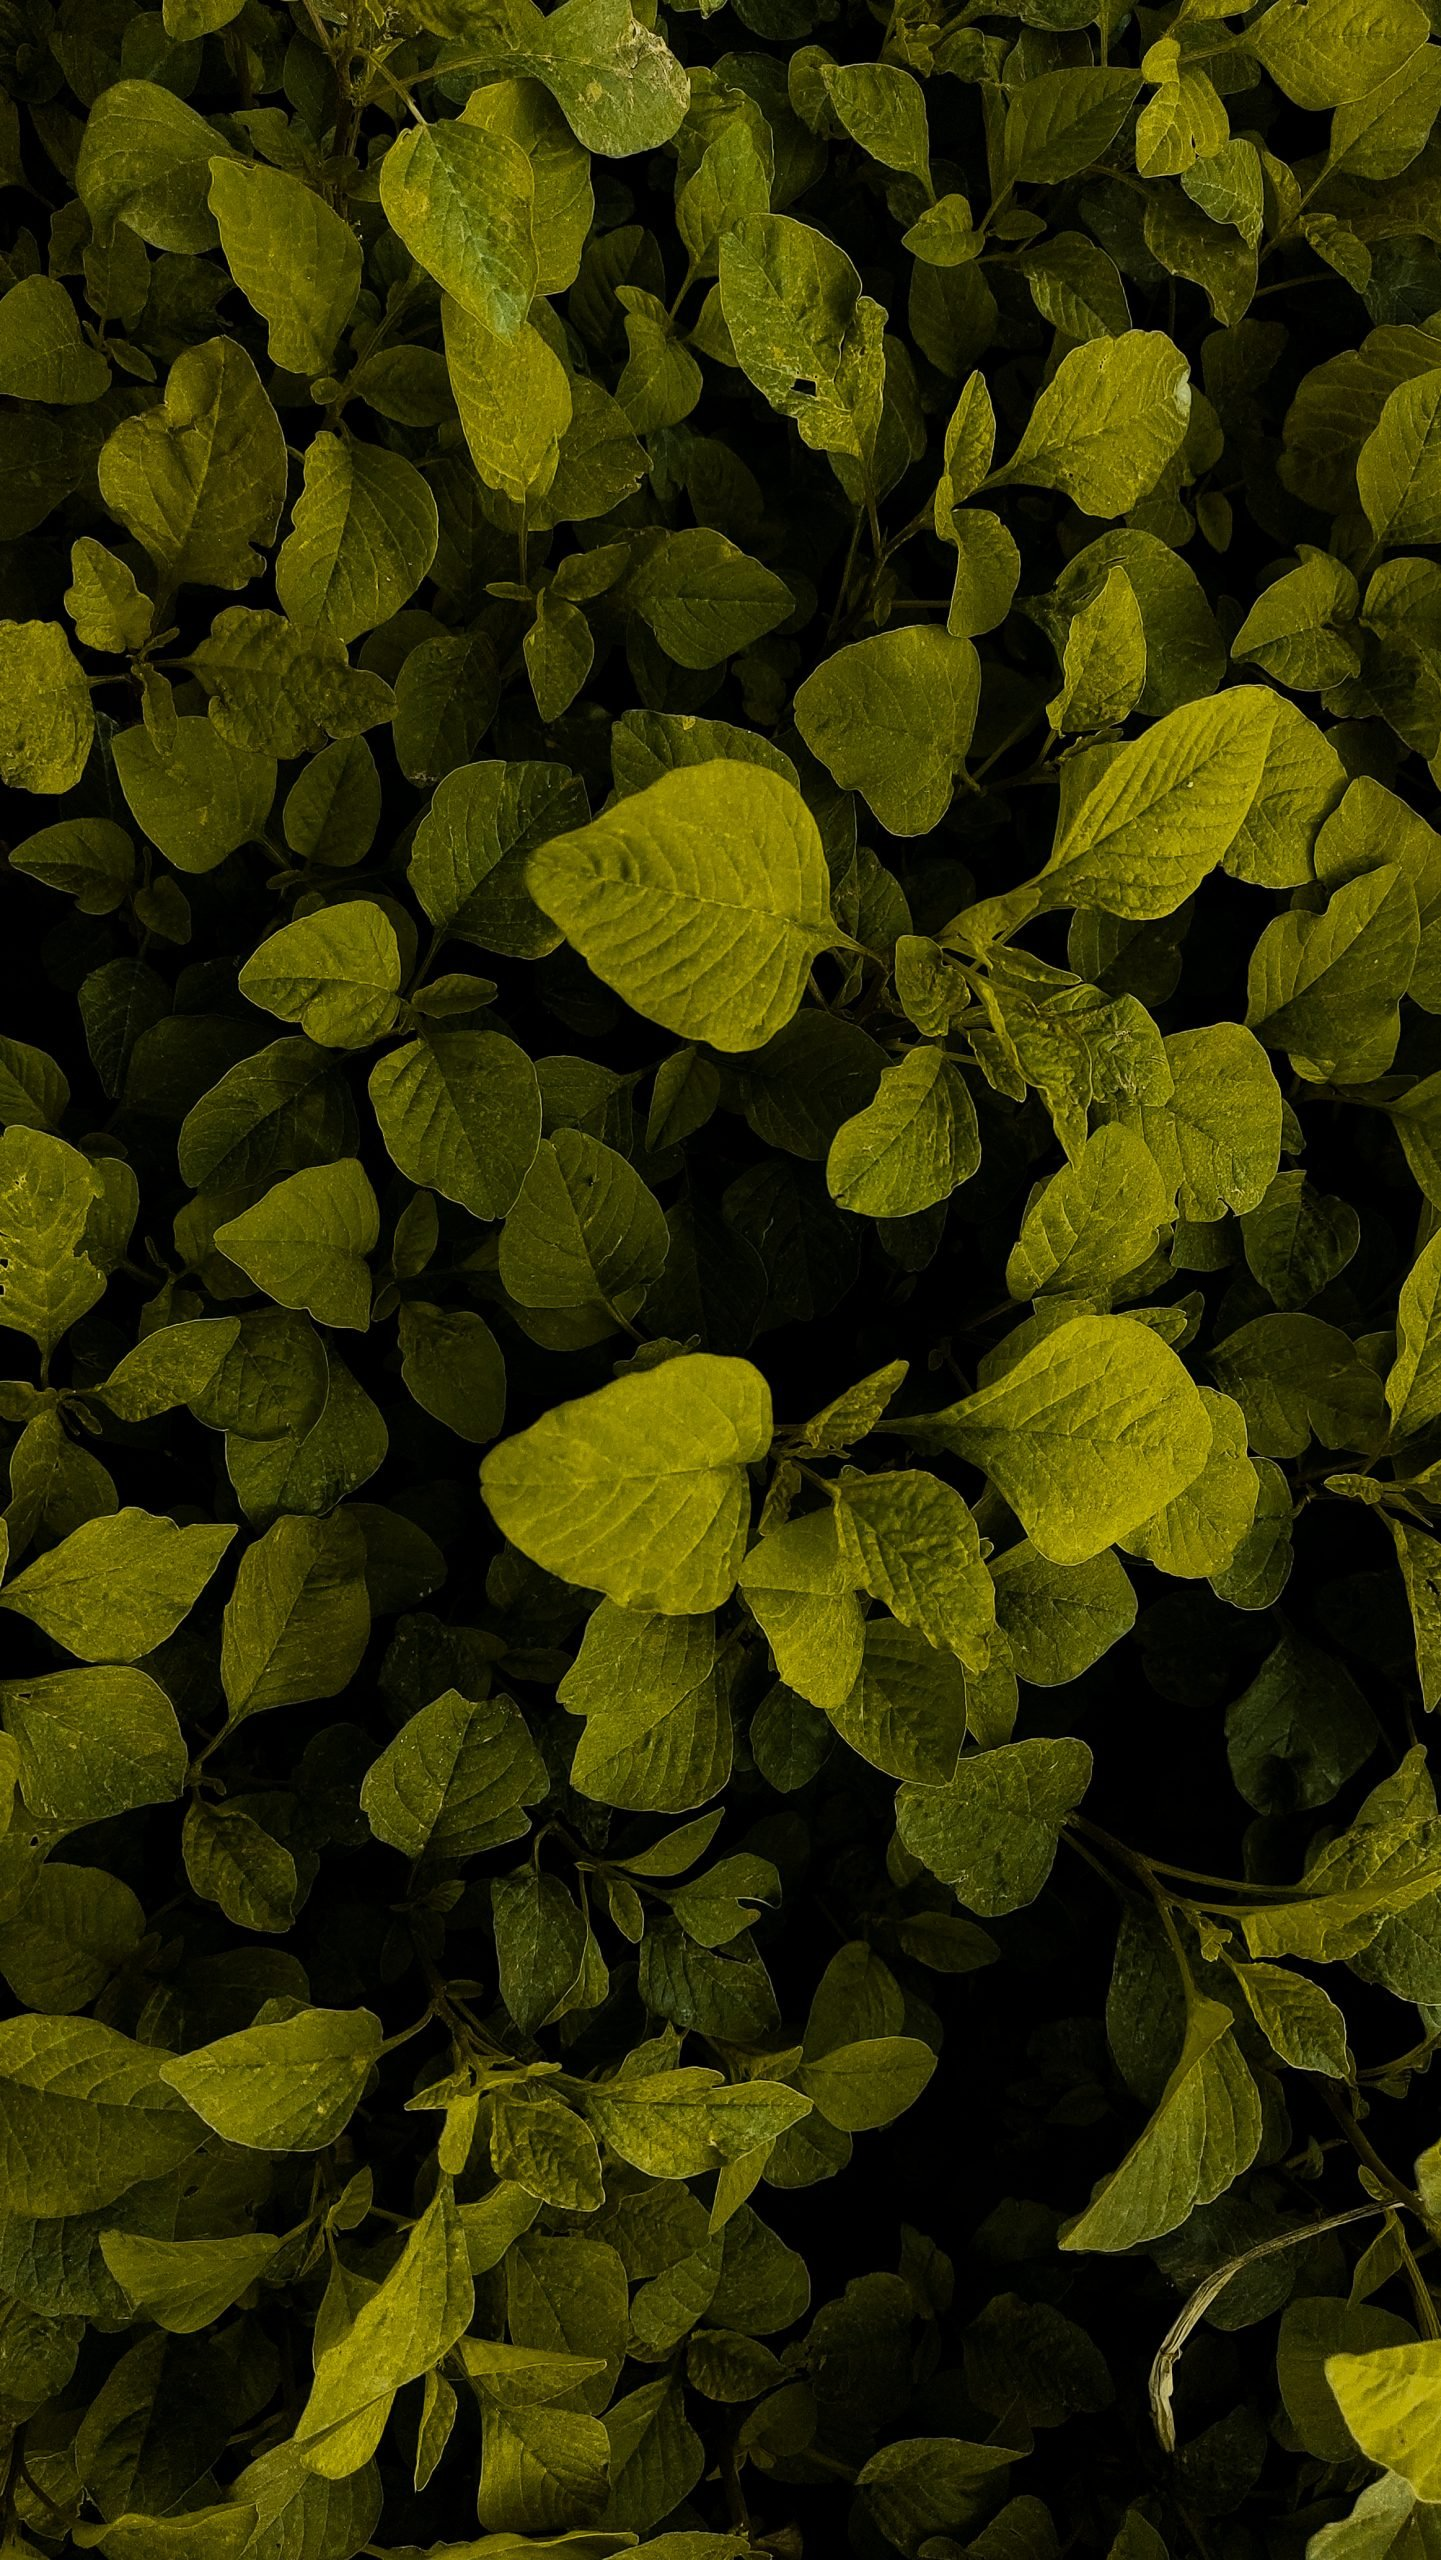 leaves that are green